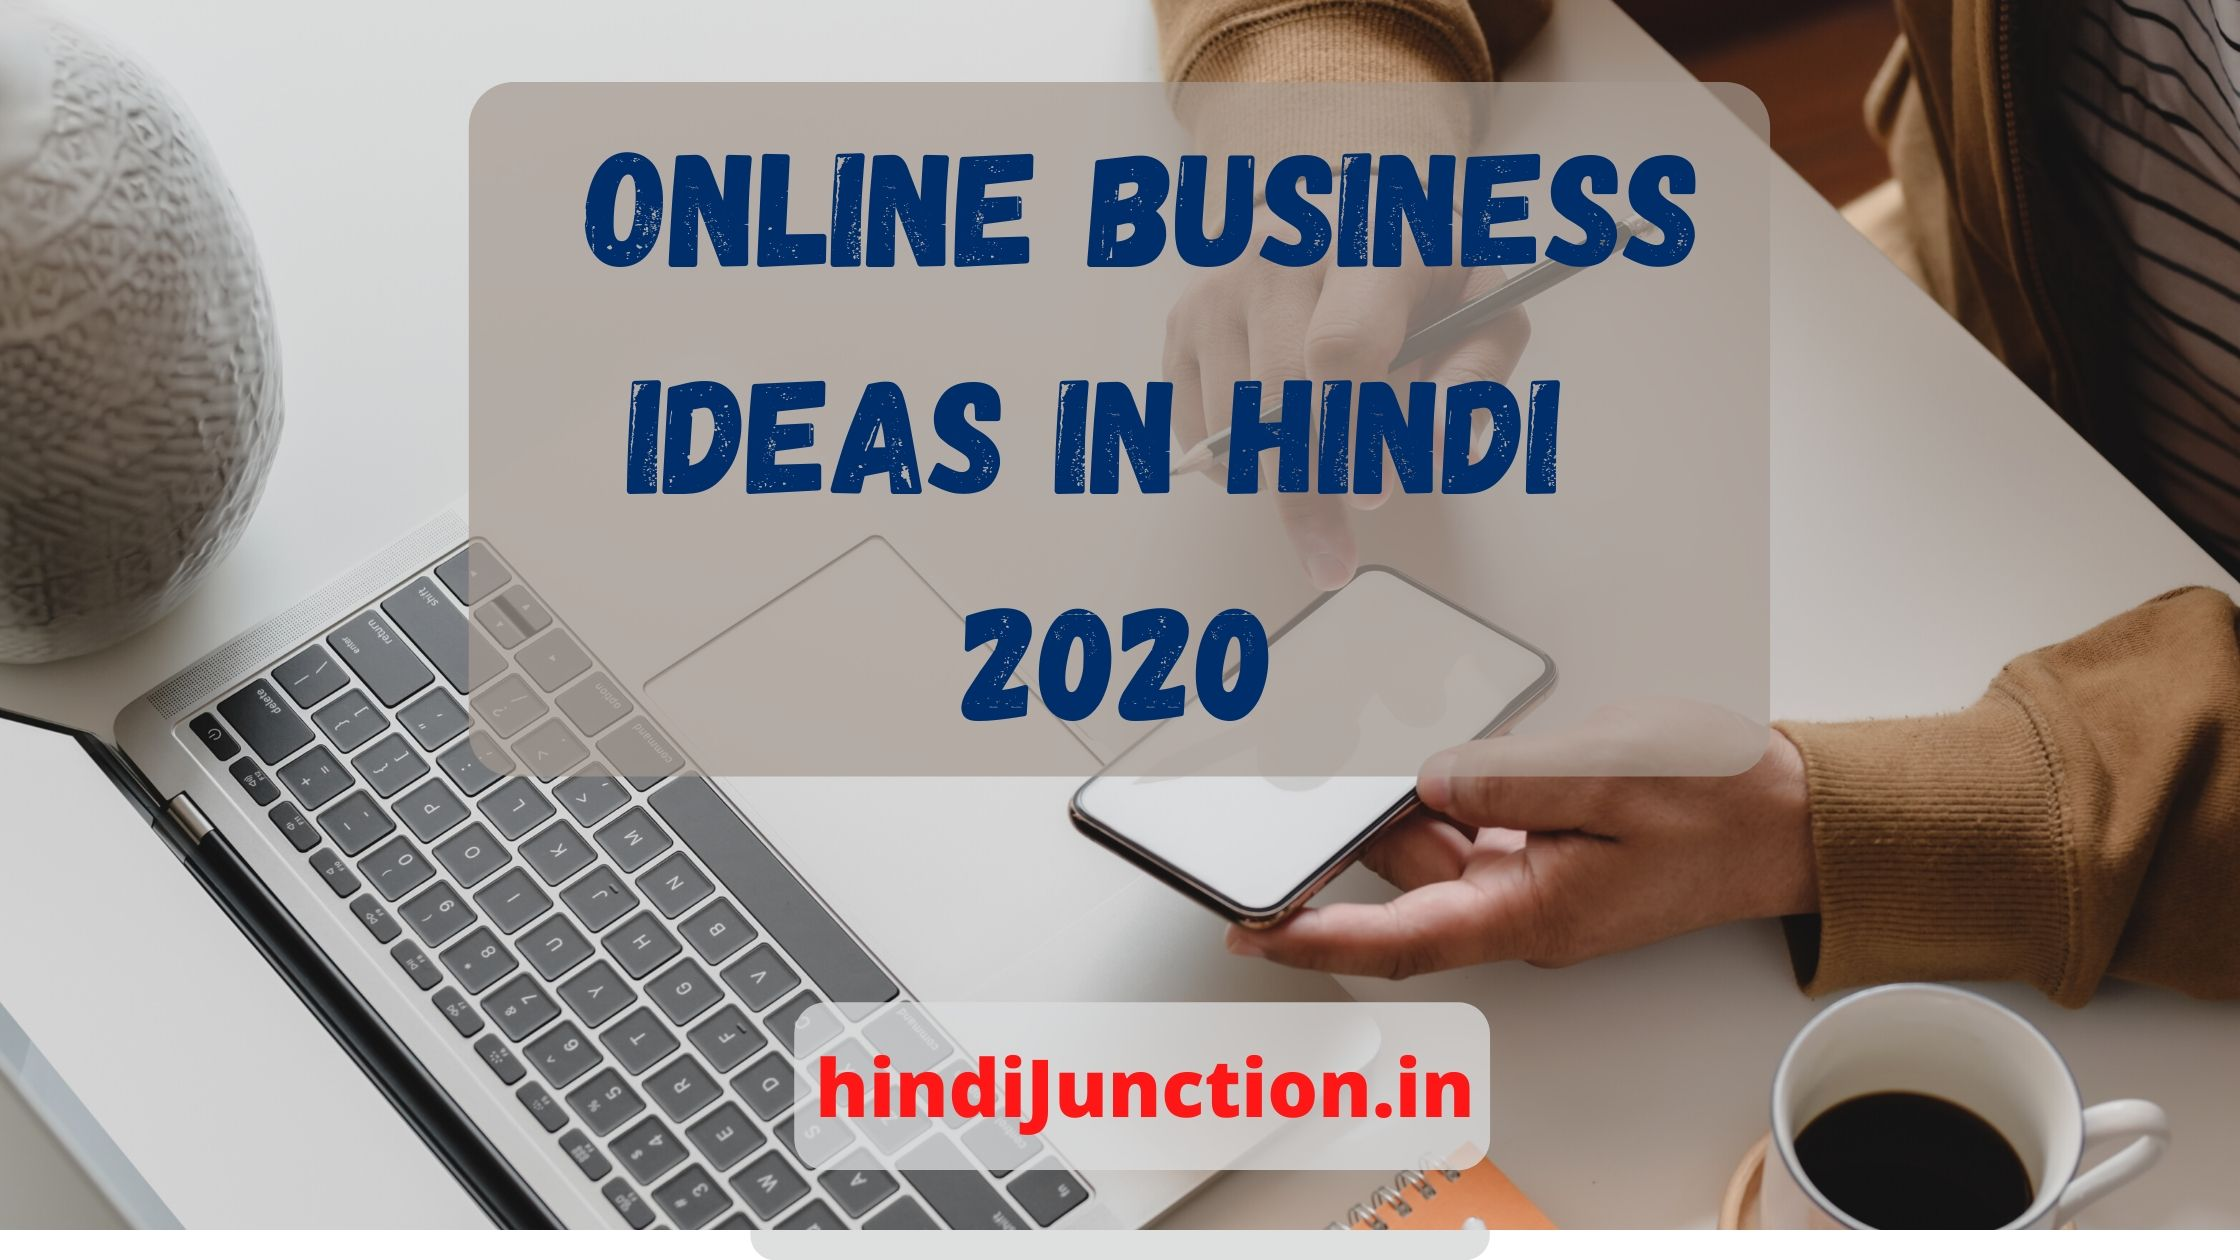 online business ideas in hindi pdf, online business ideas in hindi 2020, business ideas hindi, online business kaise kare in hindi, online business in india at home without investment in hindi, ghar baithe online business kaise kare, digital business ideas in hindi, online shopping business plan in hindi, online business ideas in india, best business ideas to make money in hindi